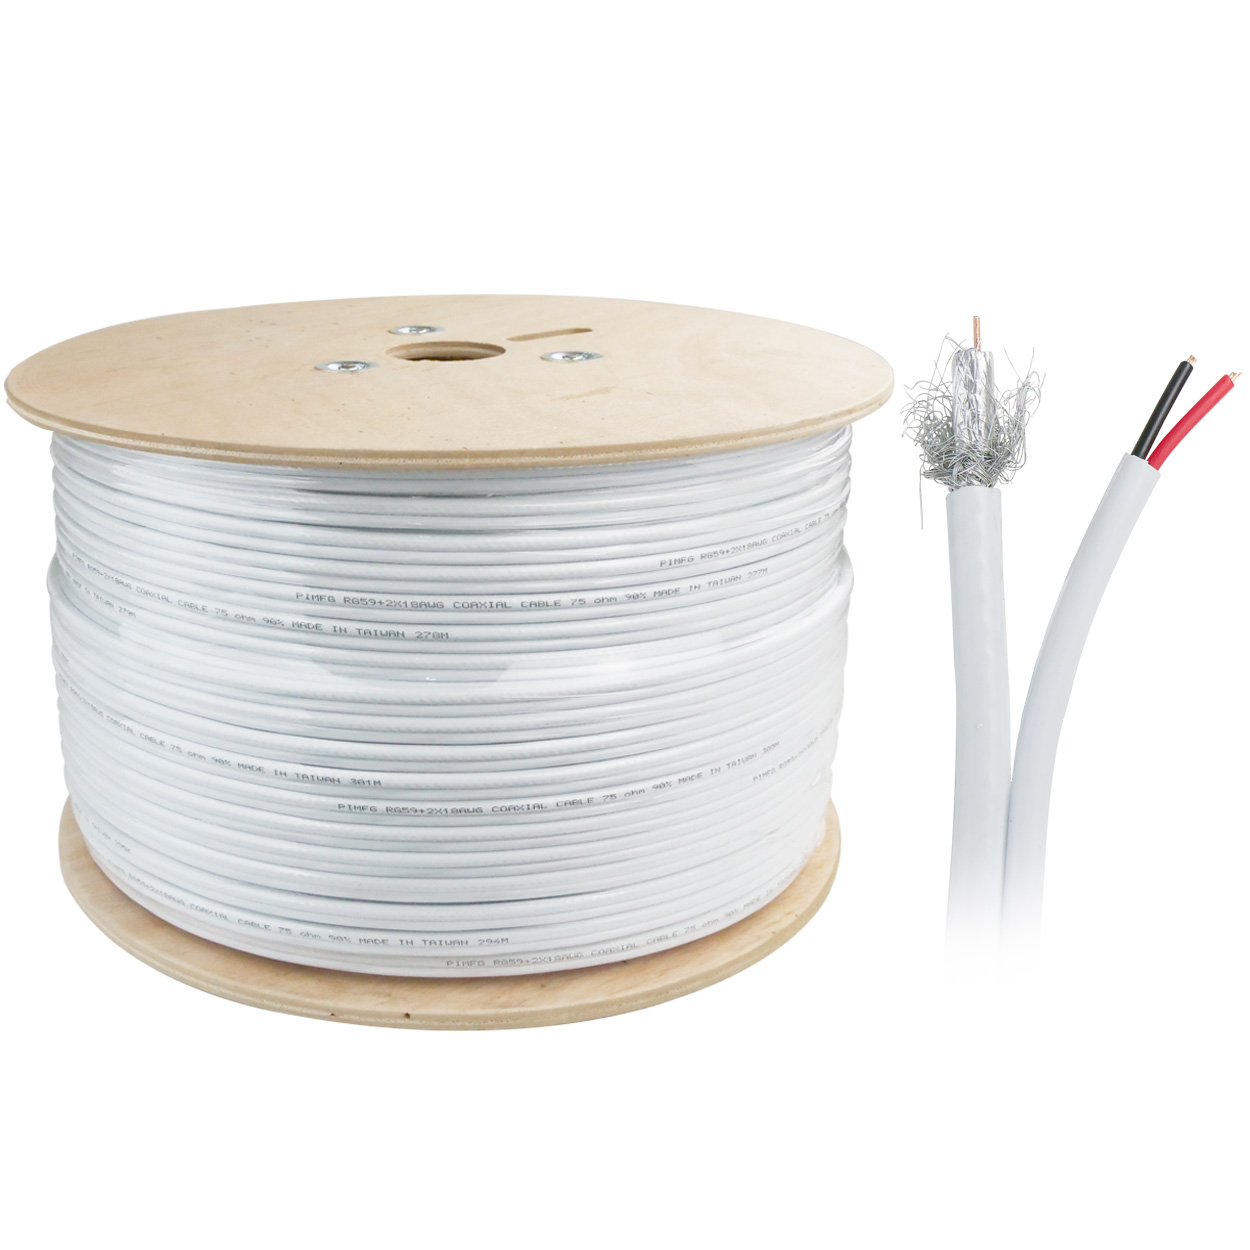 1000ft Bulk RG59 Siamese Coaxial / Power Cable - White, Dual Shielding (Aluminum Foil + ALMG Braid)